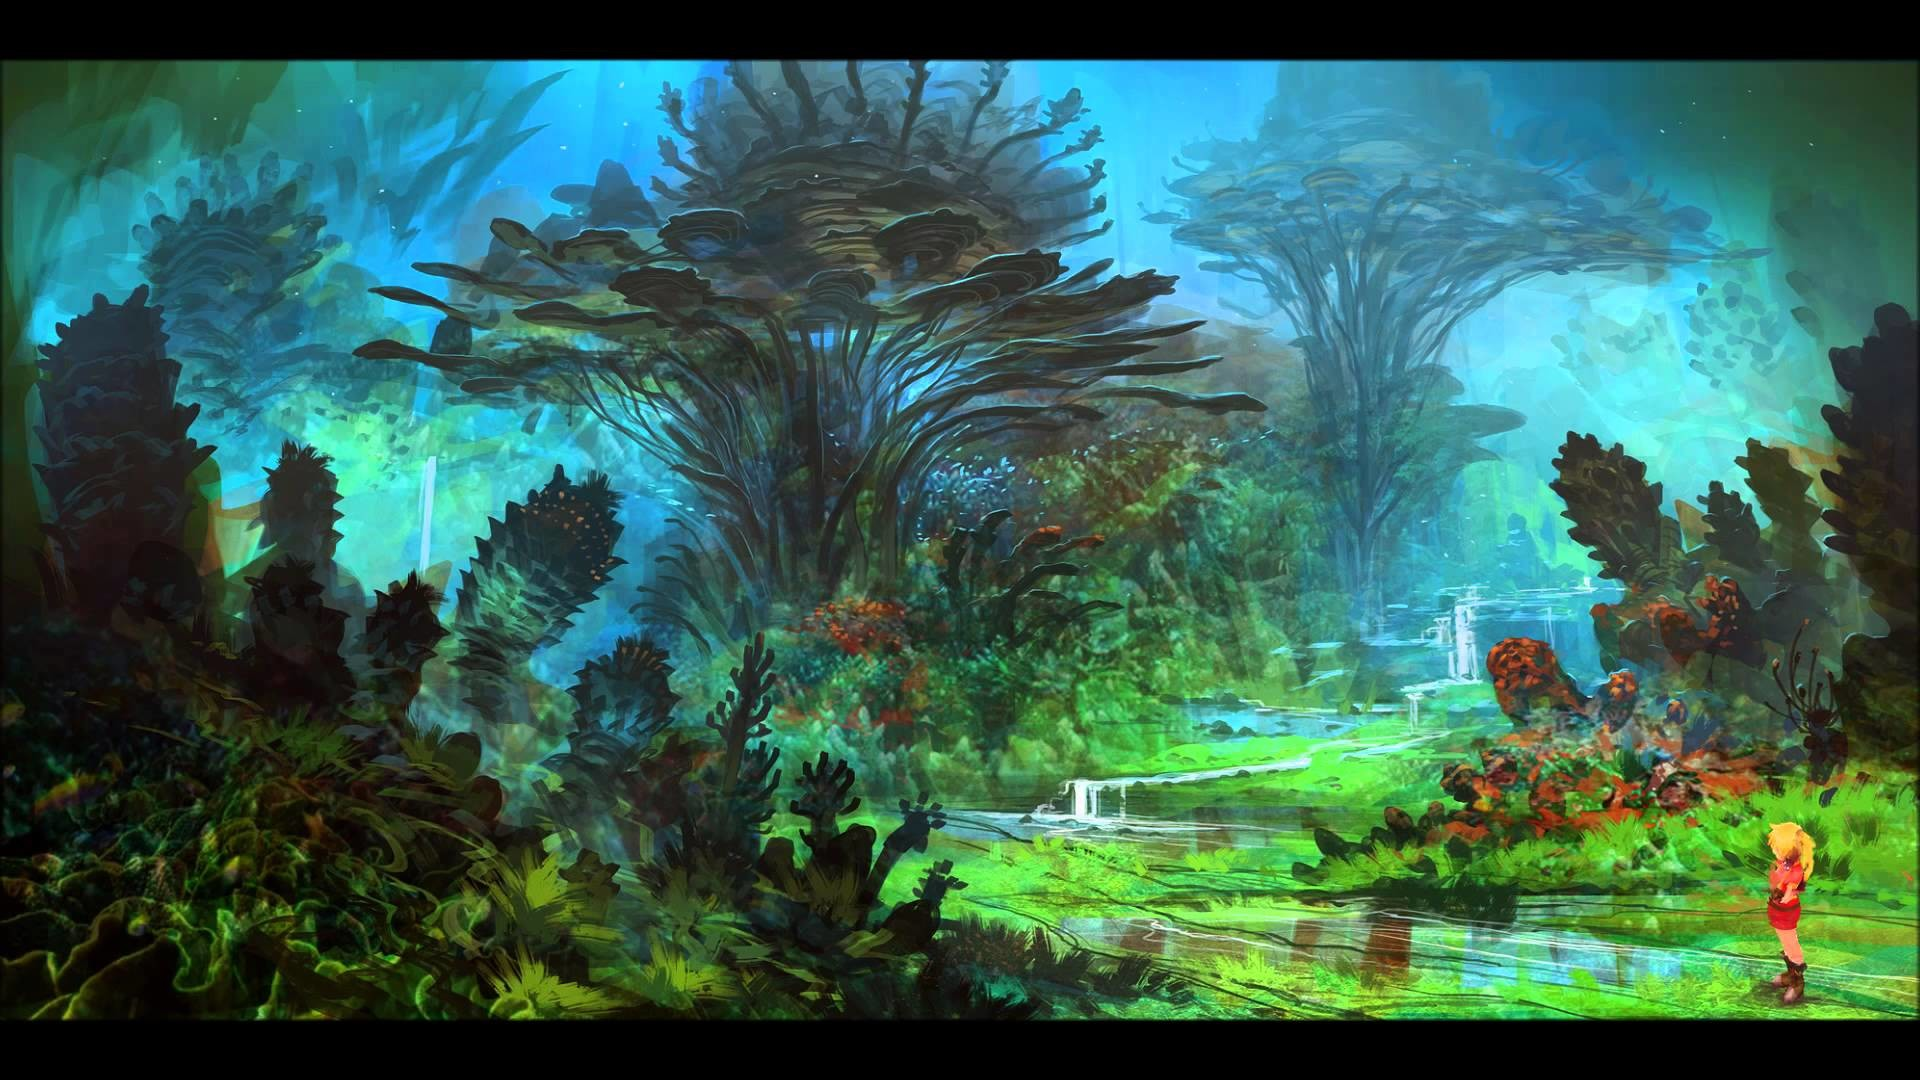 Res: 1920x1080, TSVG 830: Chrono Cross - Forest Of Illusion